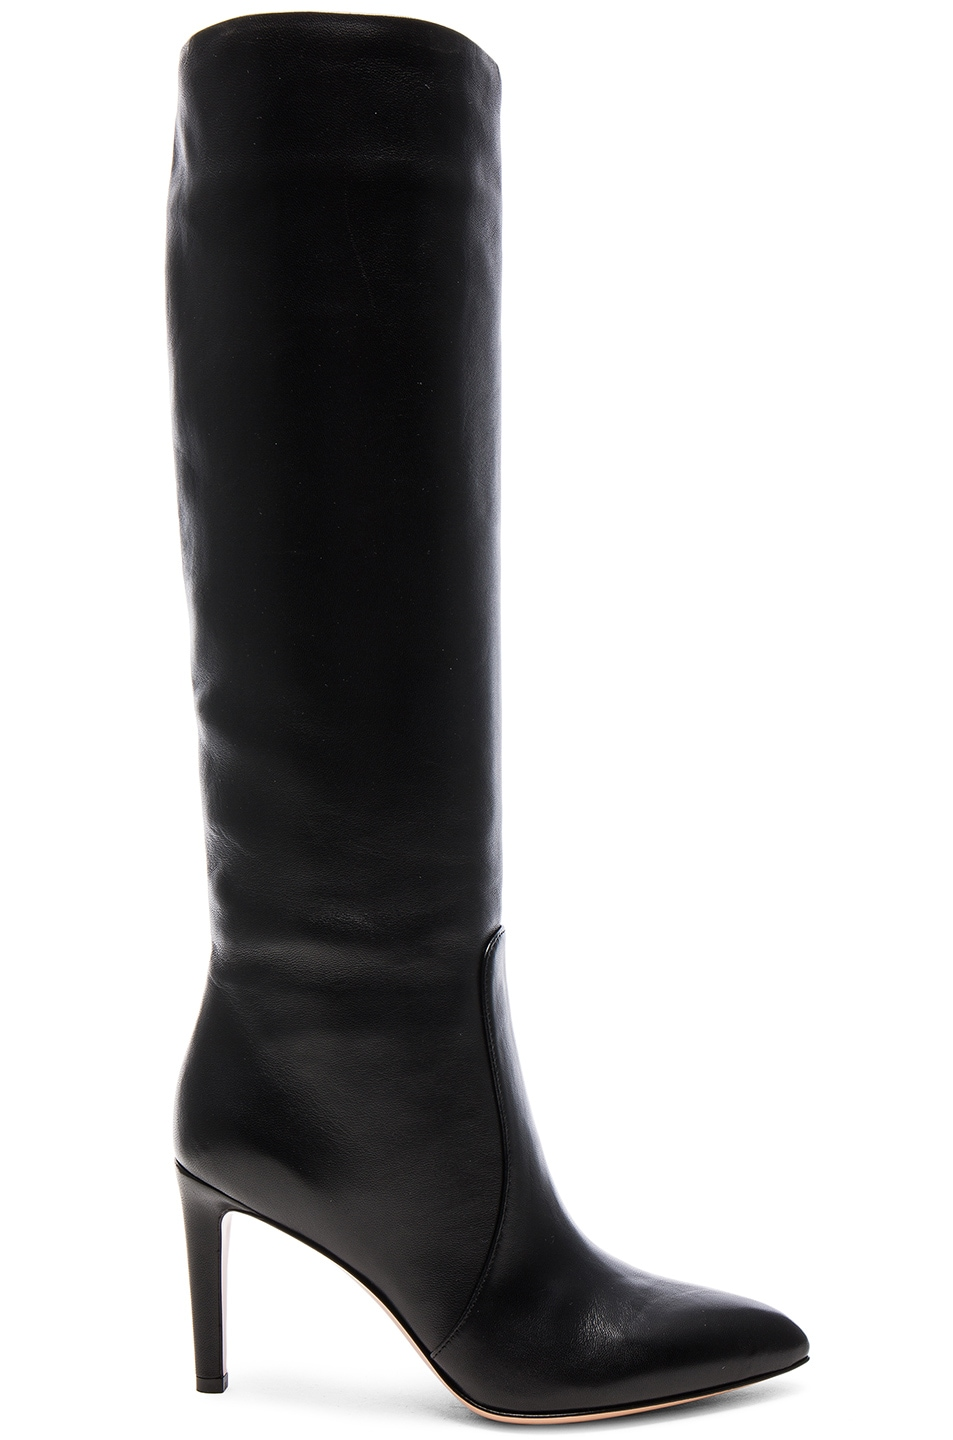 Image 1 of Gianvito Rossi Leather Boots in Black